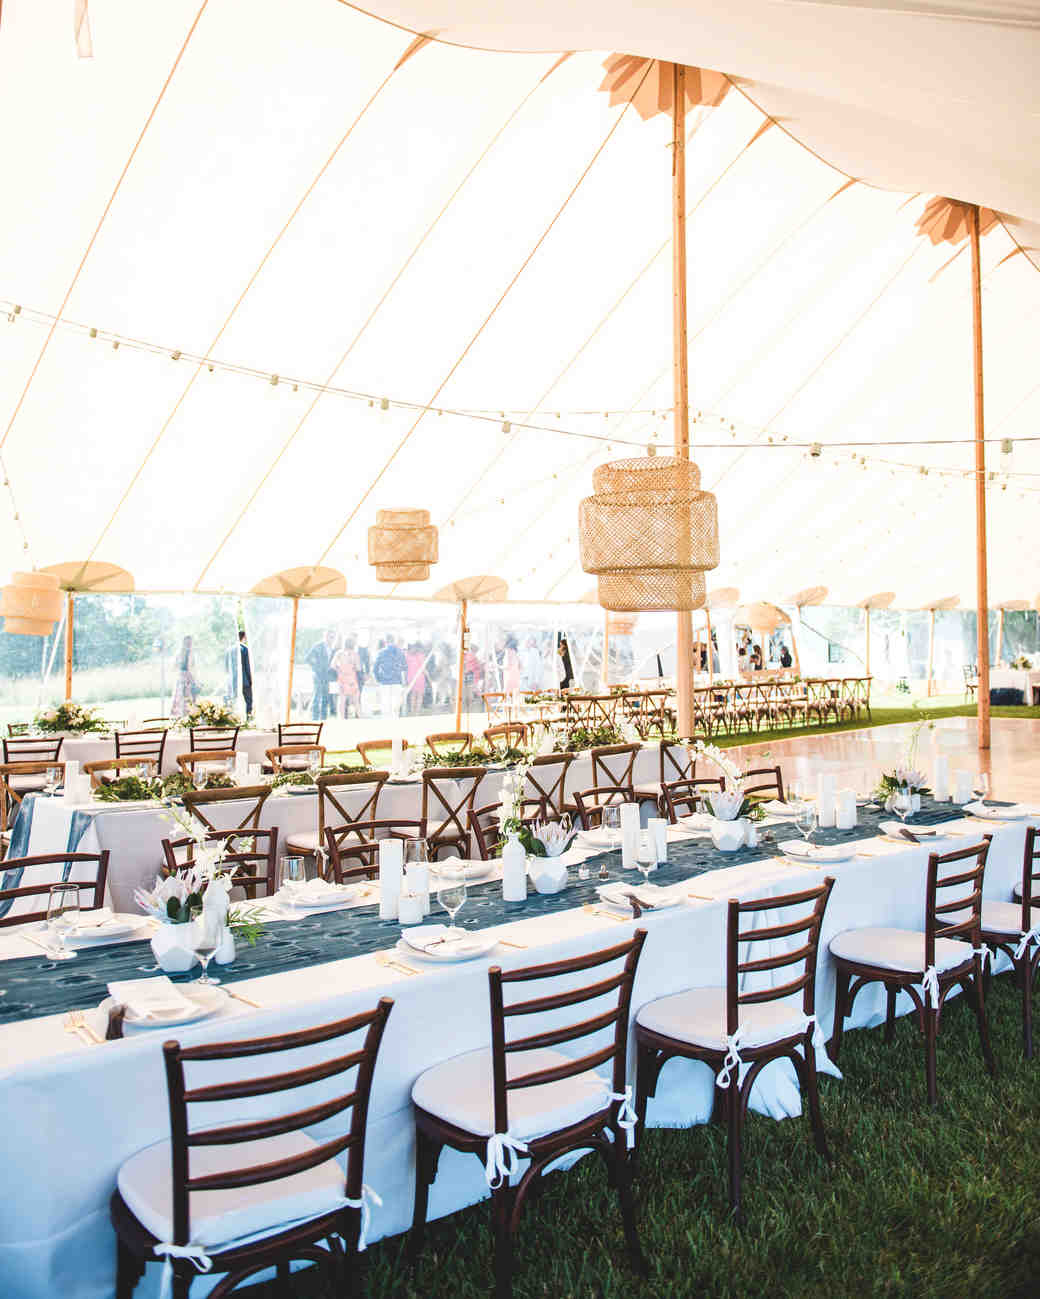 katie simon wedding tent